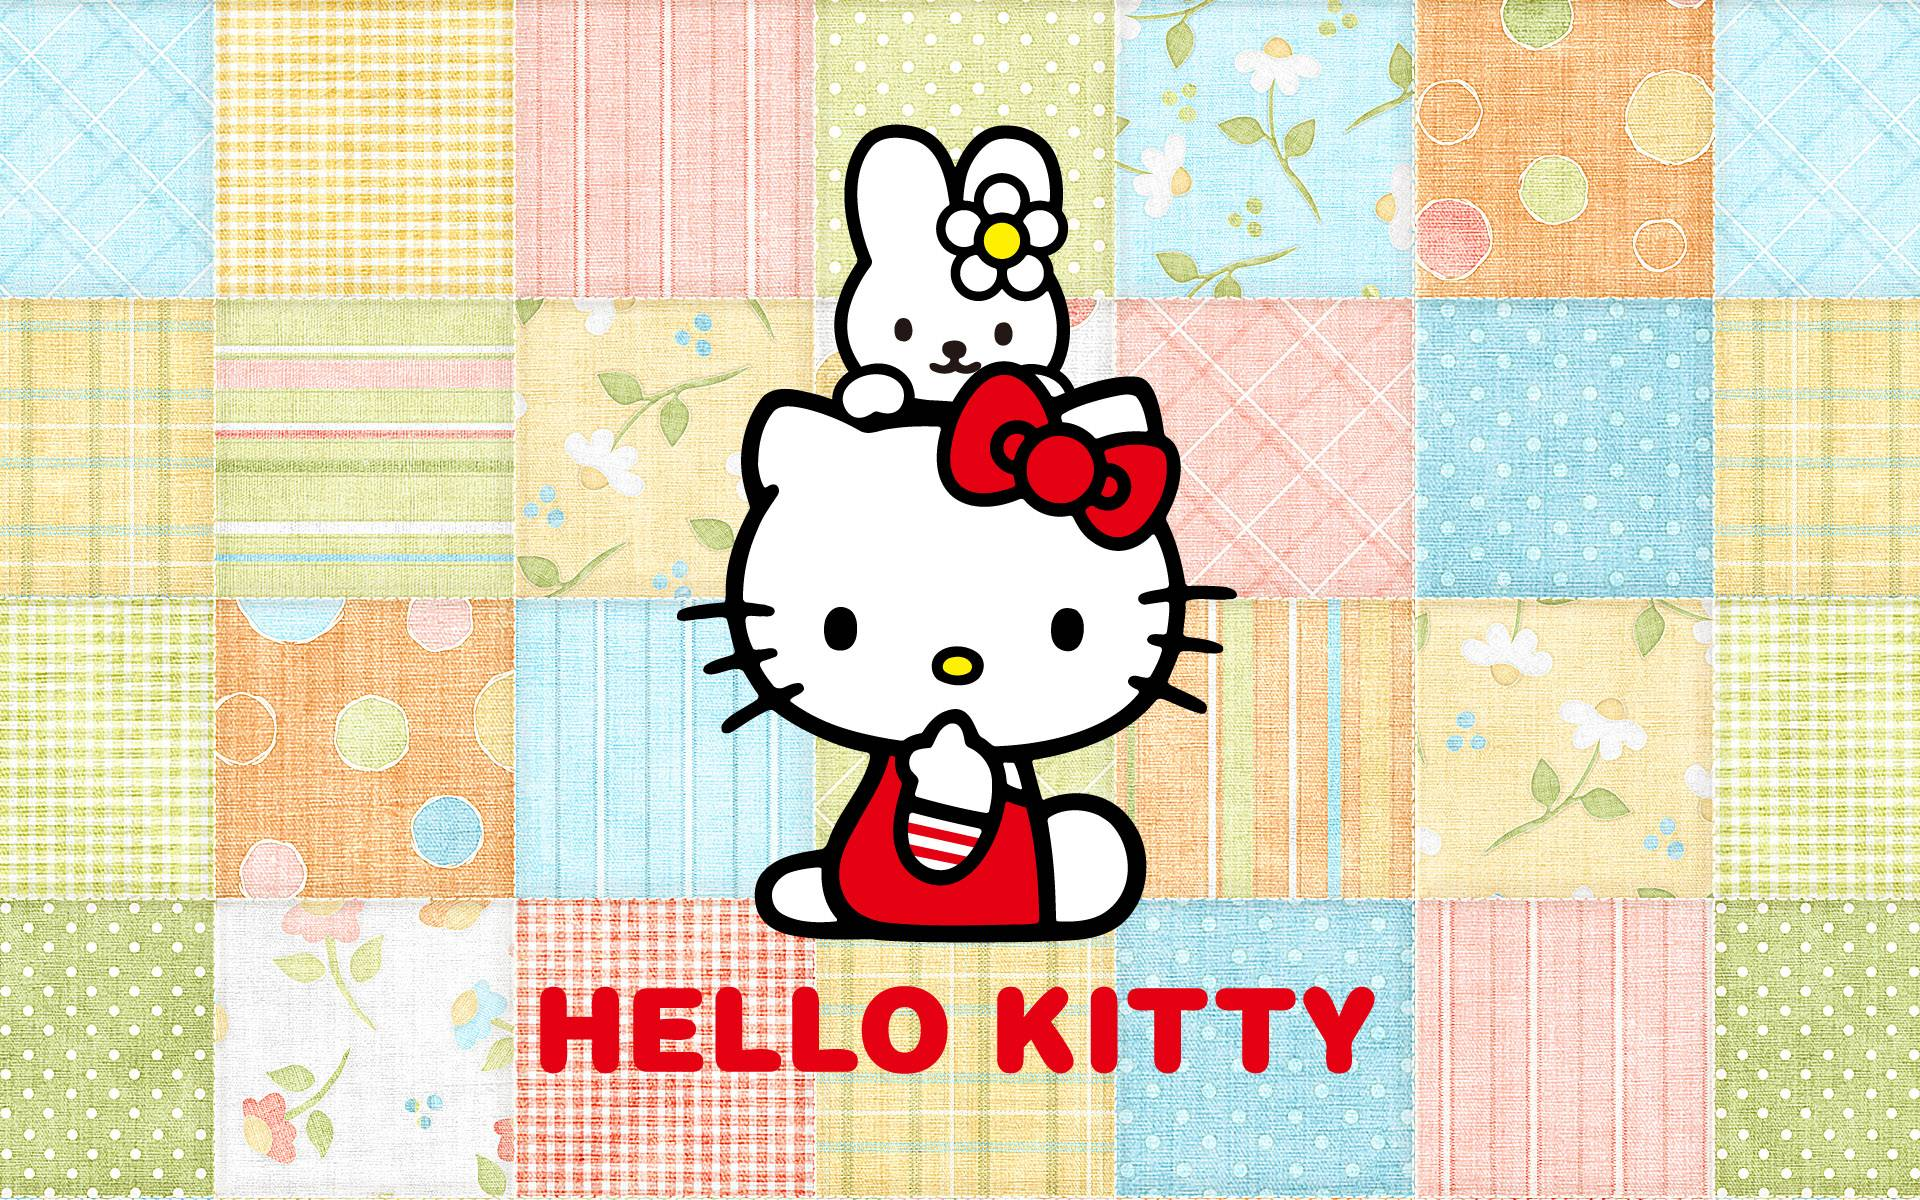 Hello Kitty PC Wallpapers   Top Hello Kitty PC Backgrounds 1920x1200